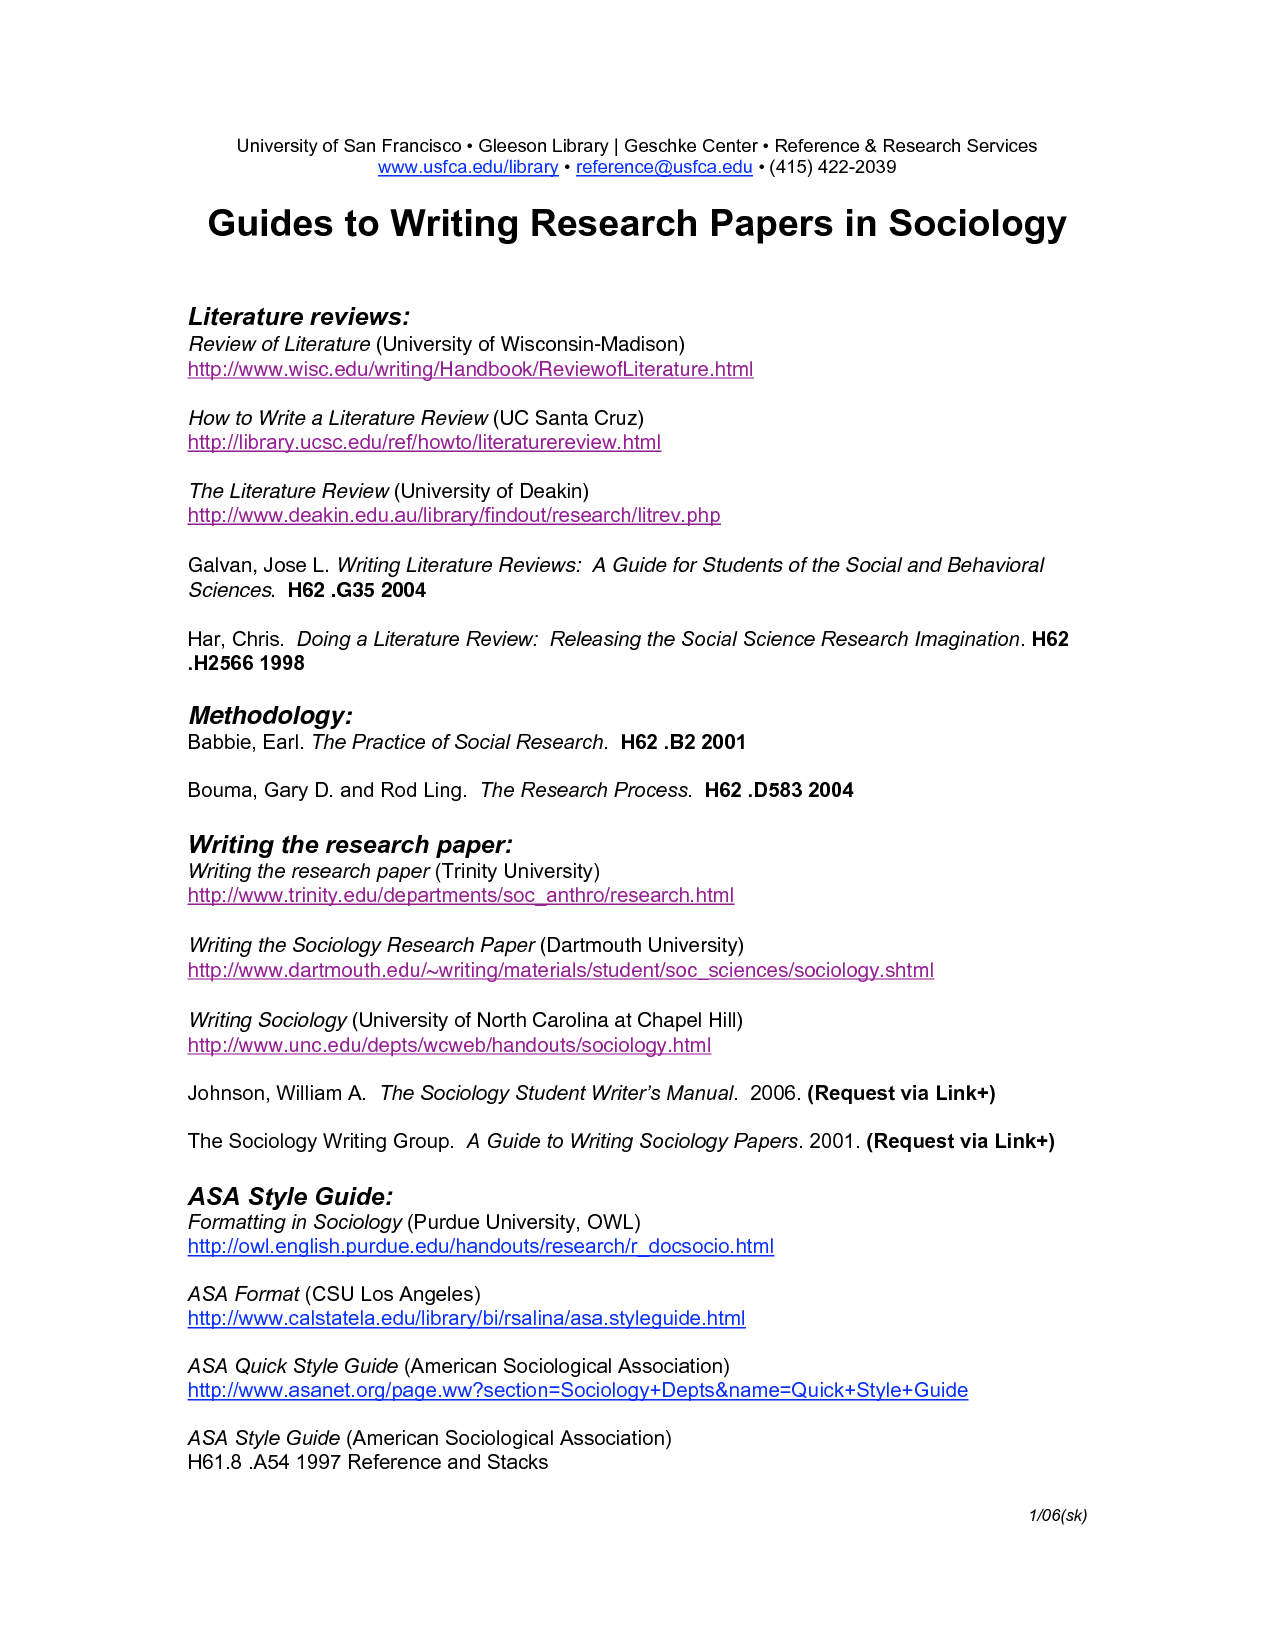 026 Asa Format Research Paper Example Sample For Sociology 135604 Singular Full